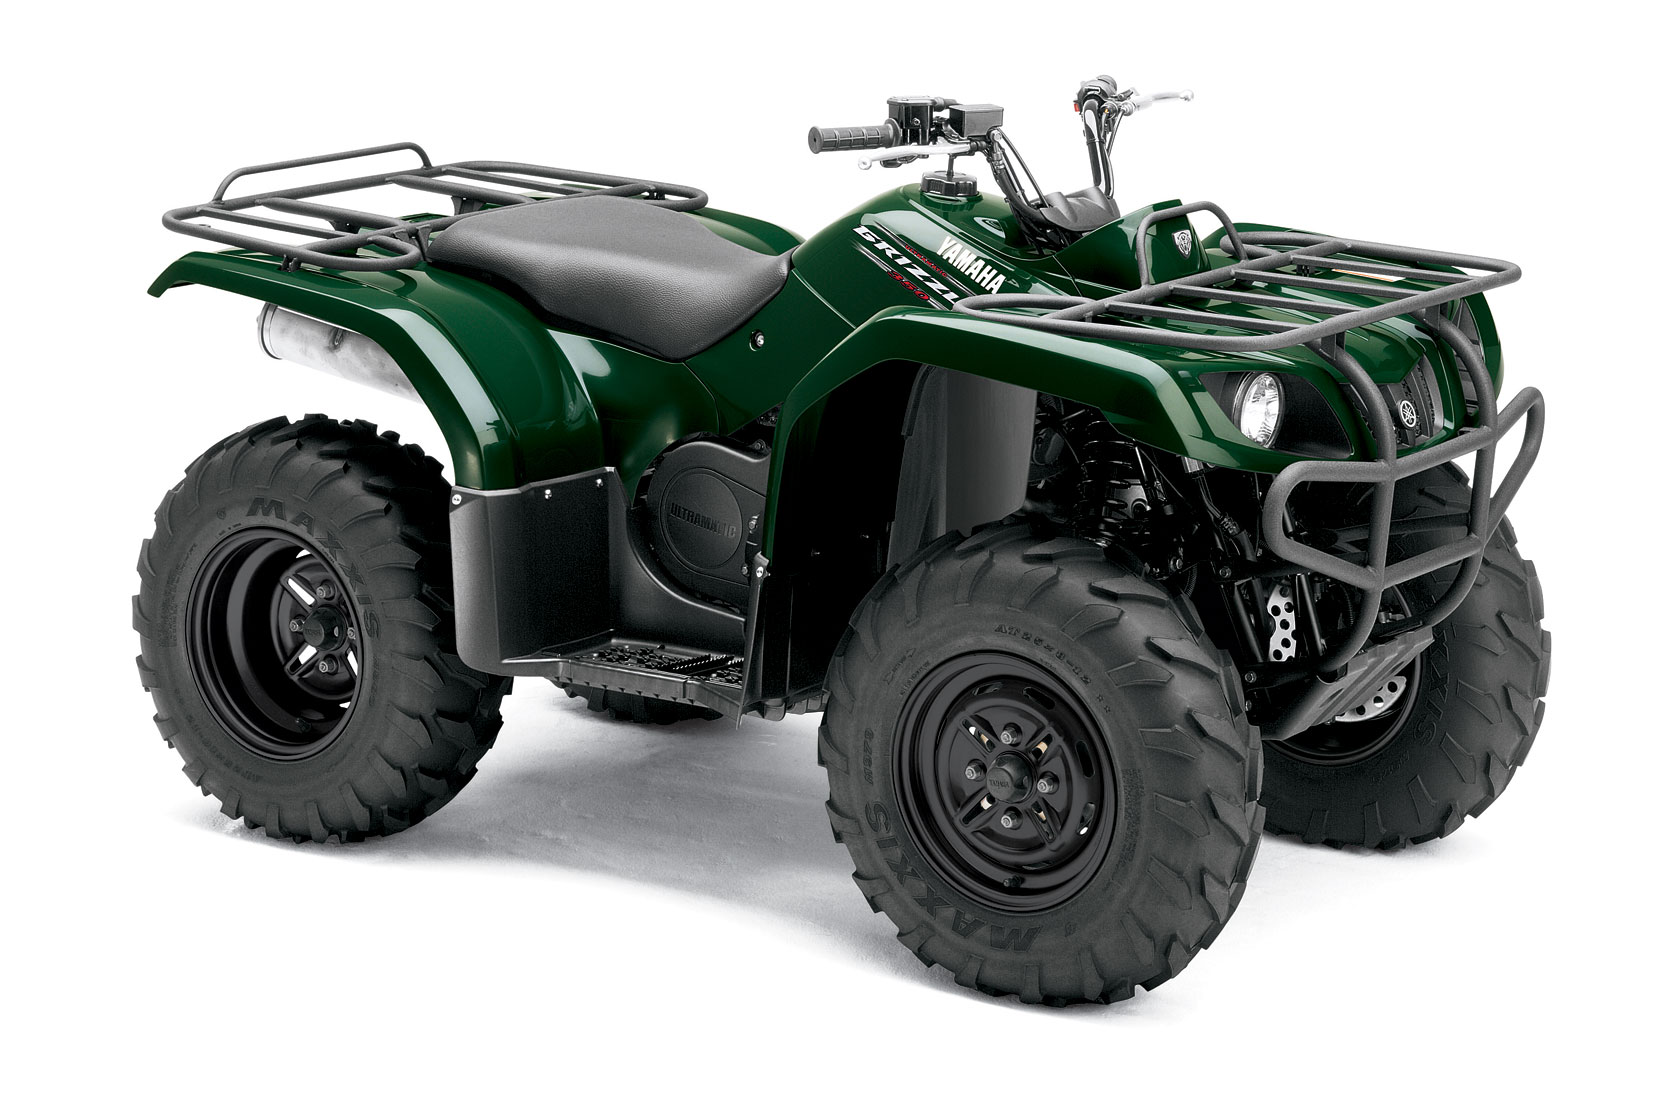 20072011 Yamaha Grizzly 350 IRS 4WD Service Manual LIT